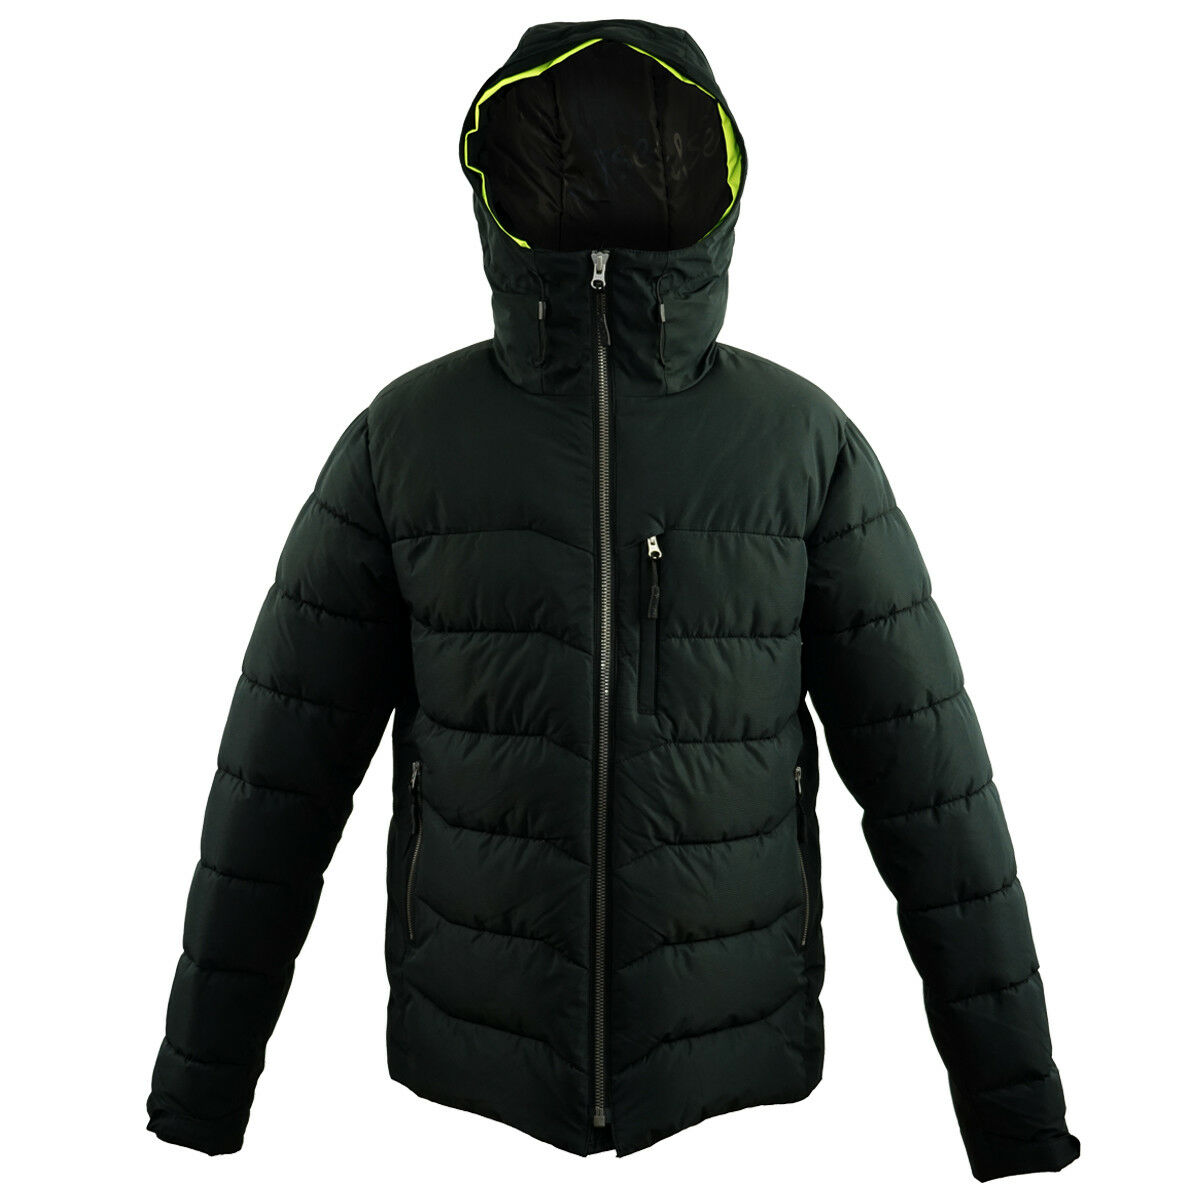 Pulse Anchor Performance Men's Ski & Snowboard Coat - Various colors (NEW)